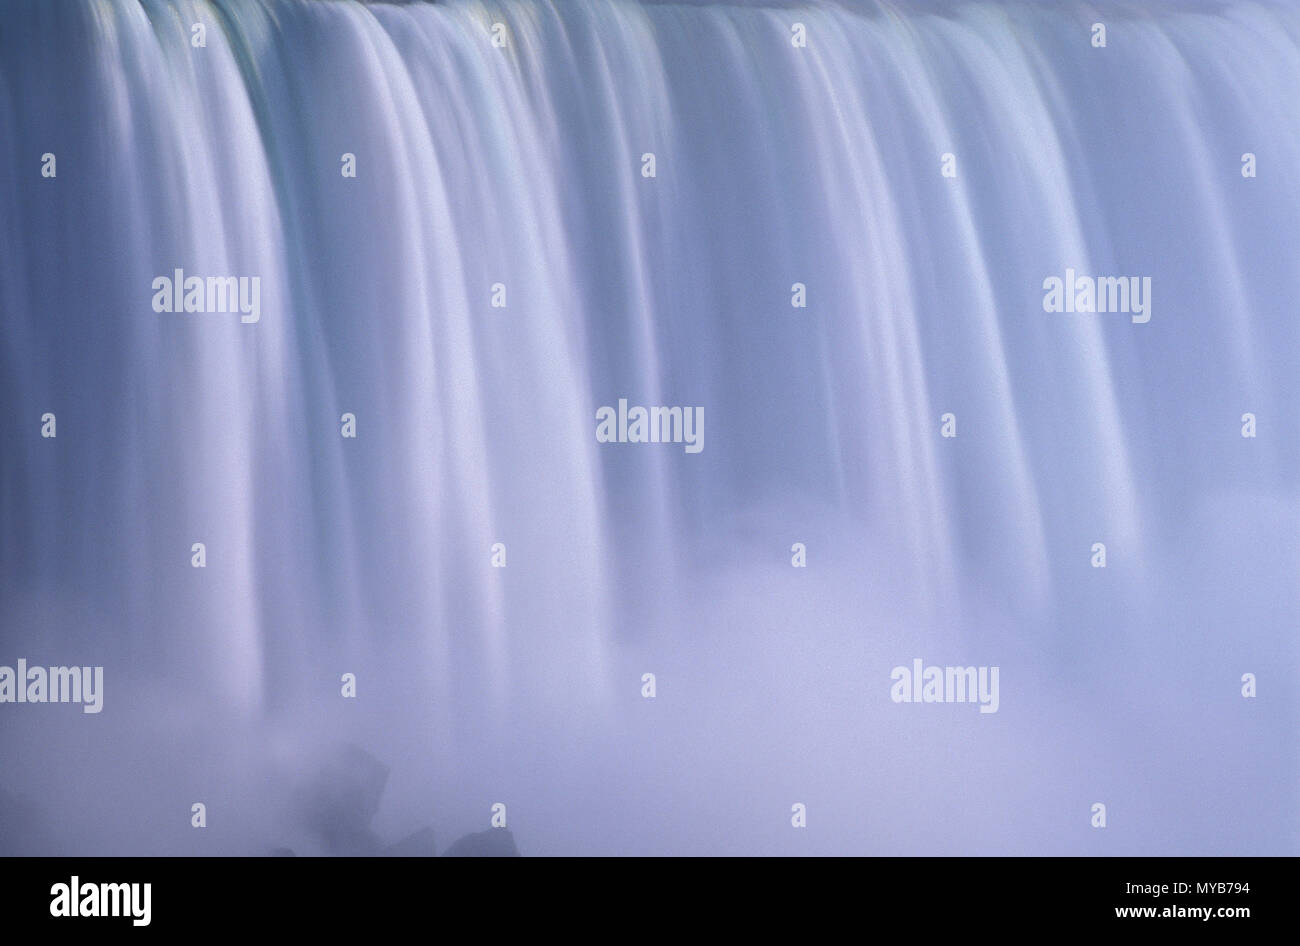 Niagara Falls, detail of the American Falls at dusk, capturing the sublime power, NY, USA - Stock Image